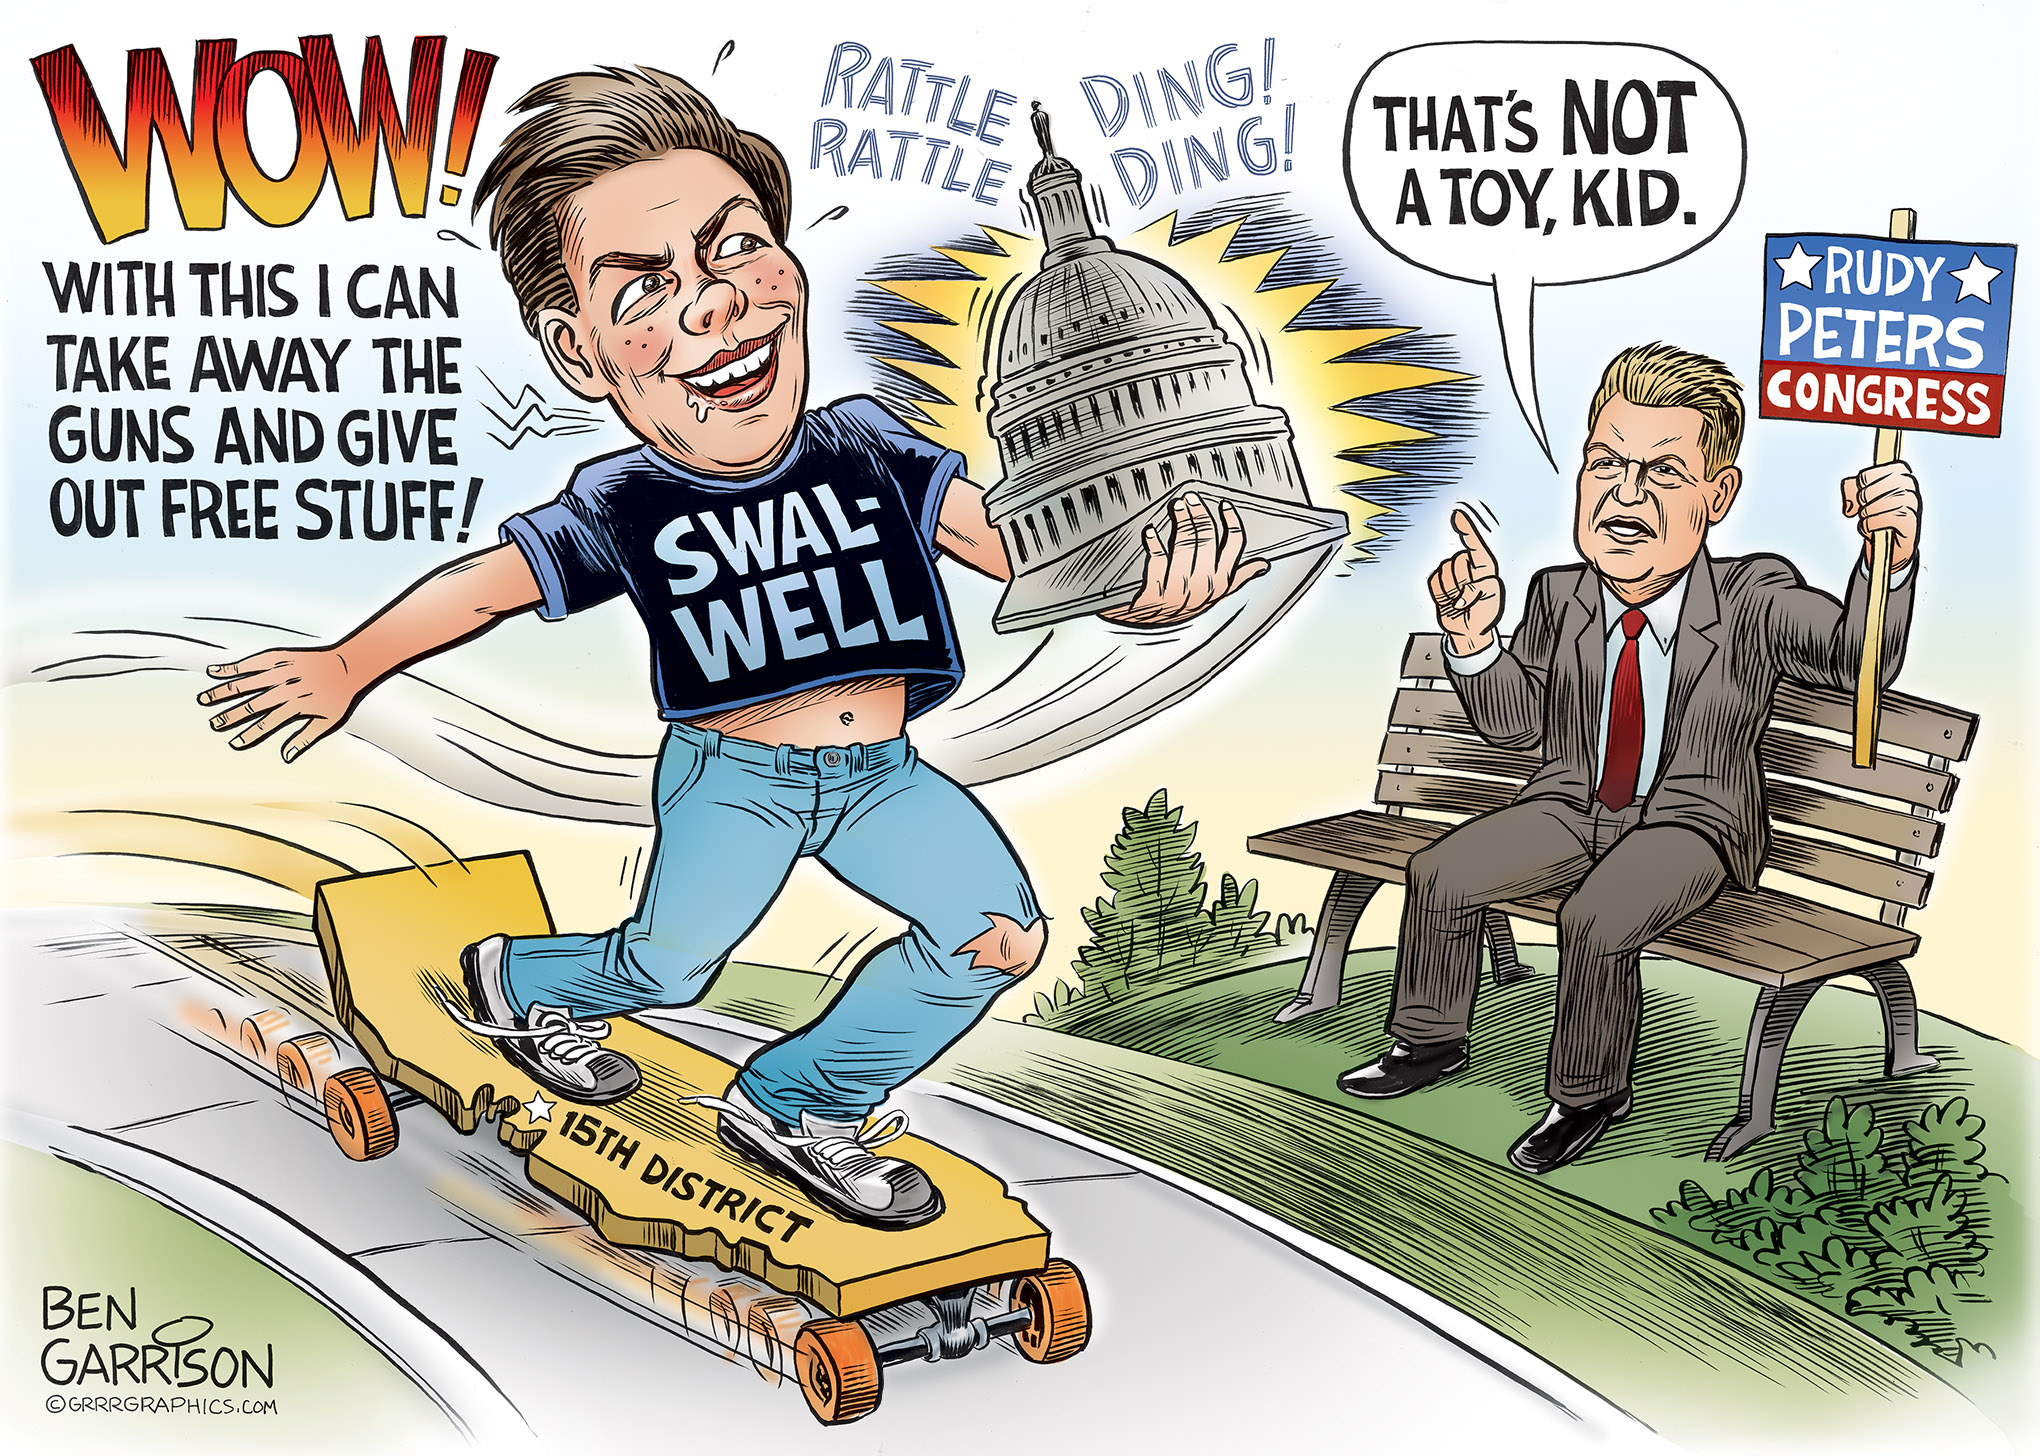 swalwell_peters_cartoon_web-1.jpg